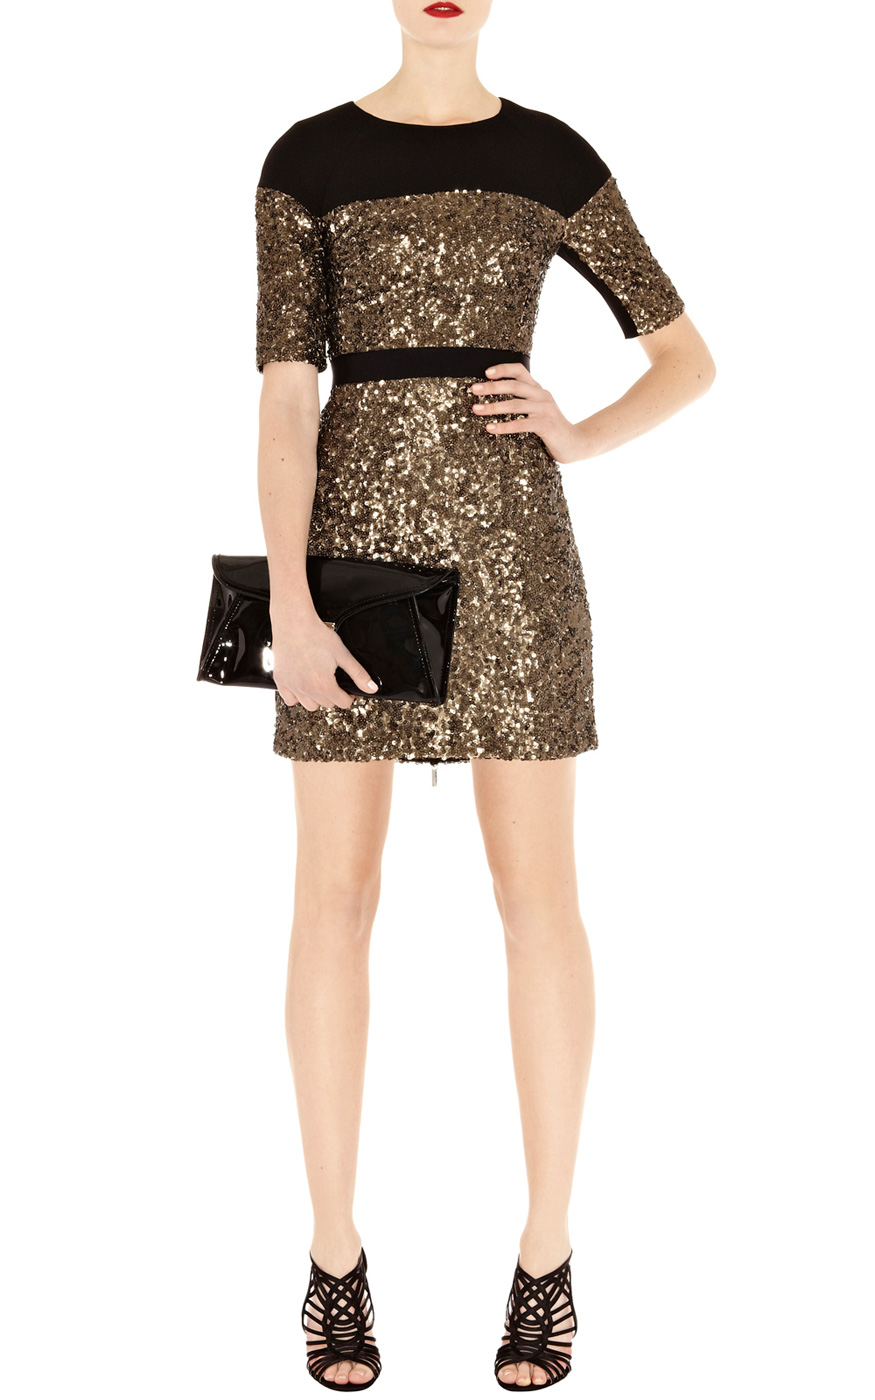 Karen Millen Party Dresses Sale 65